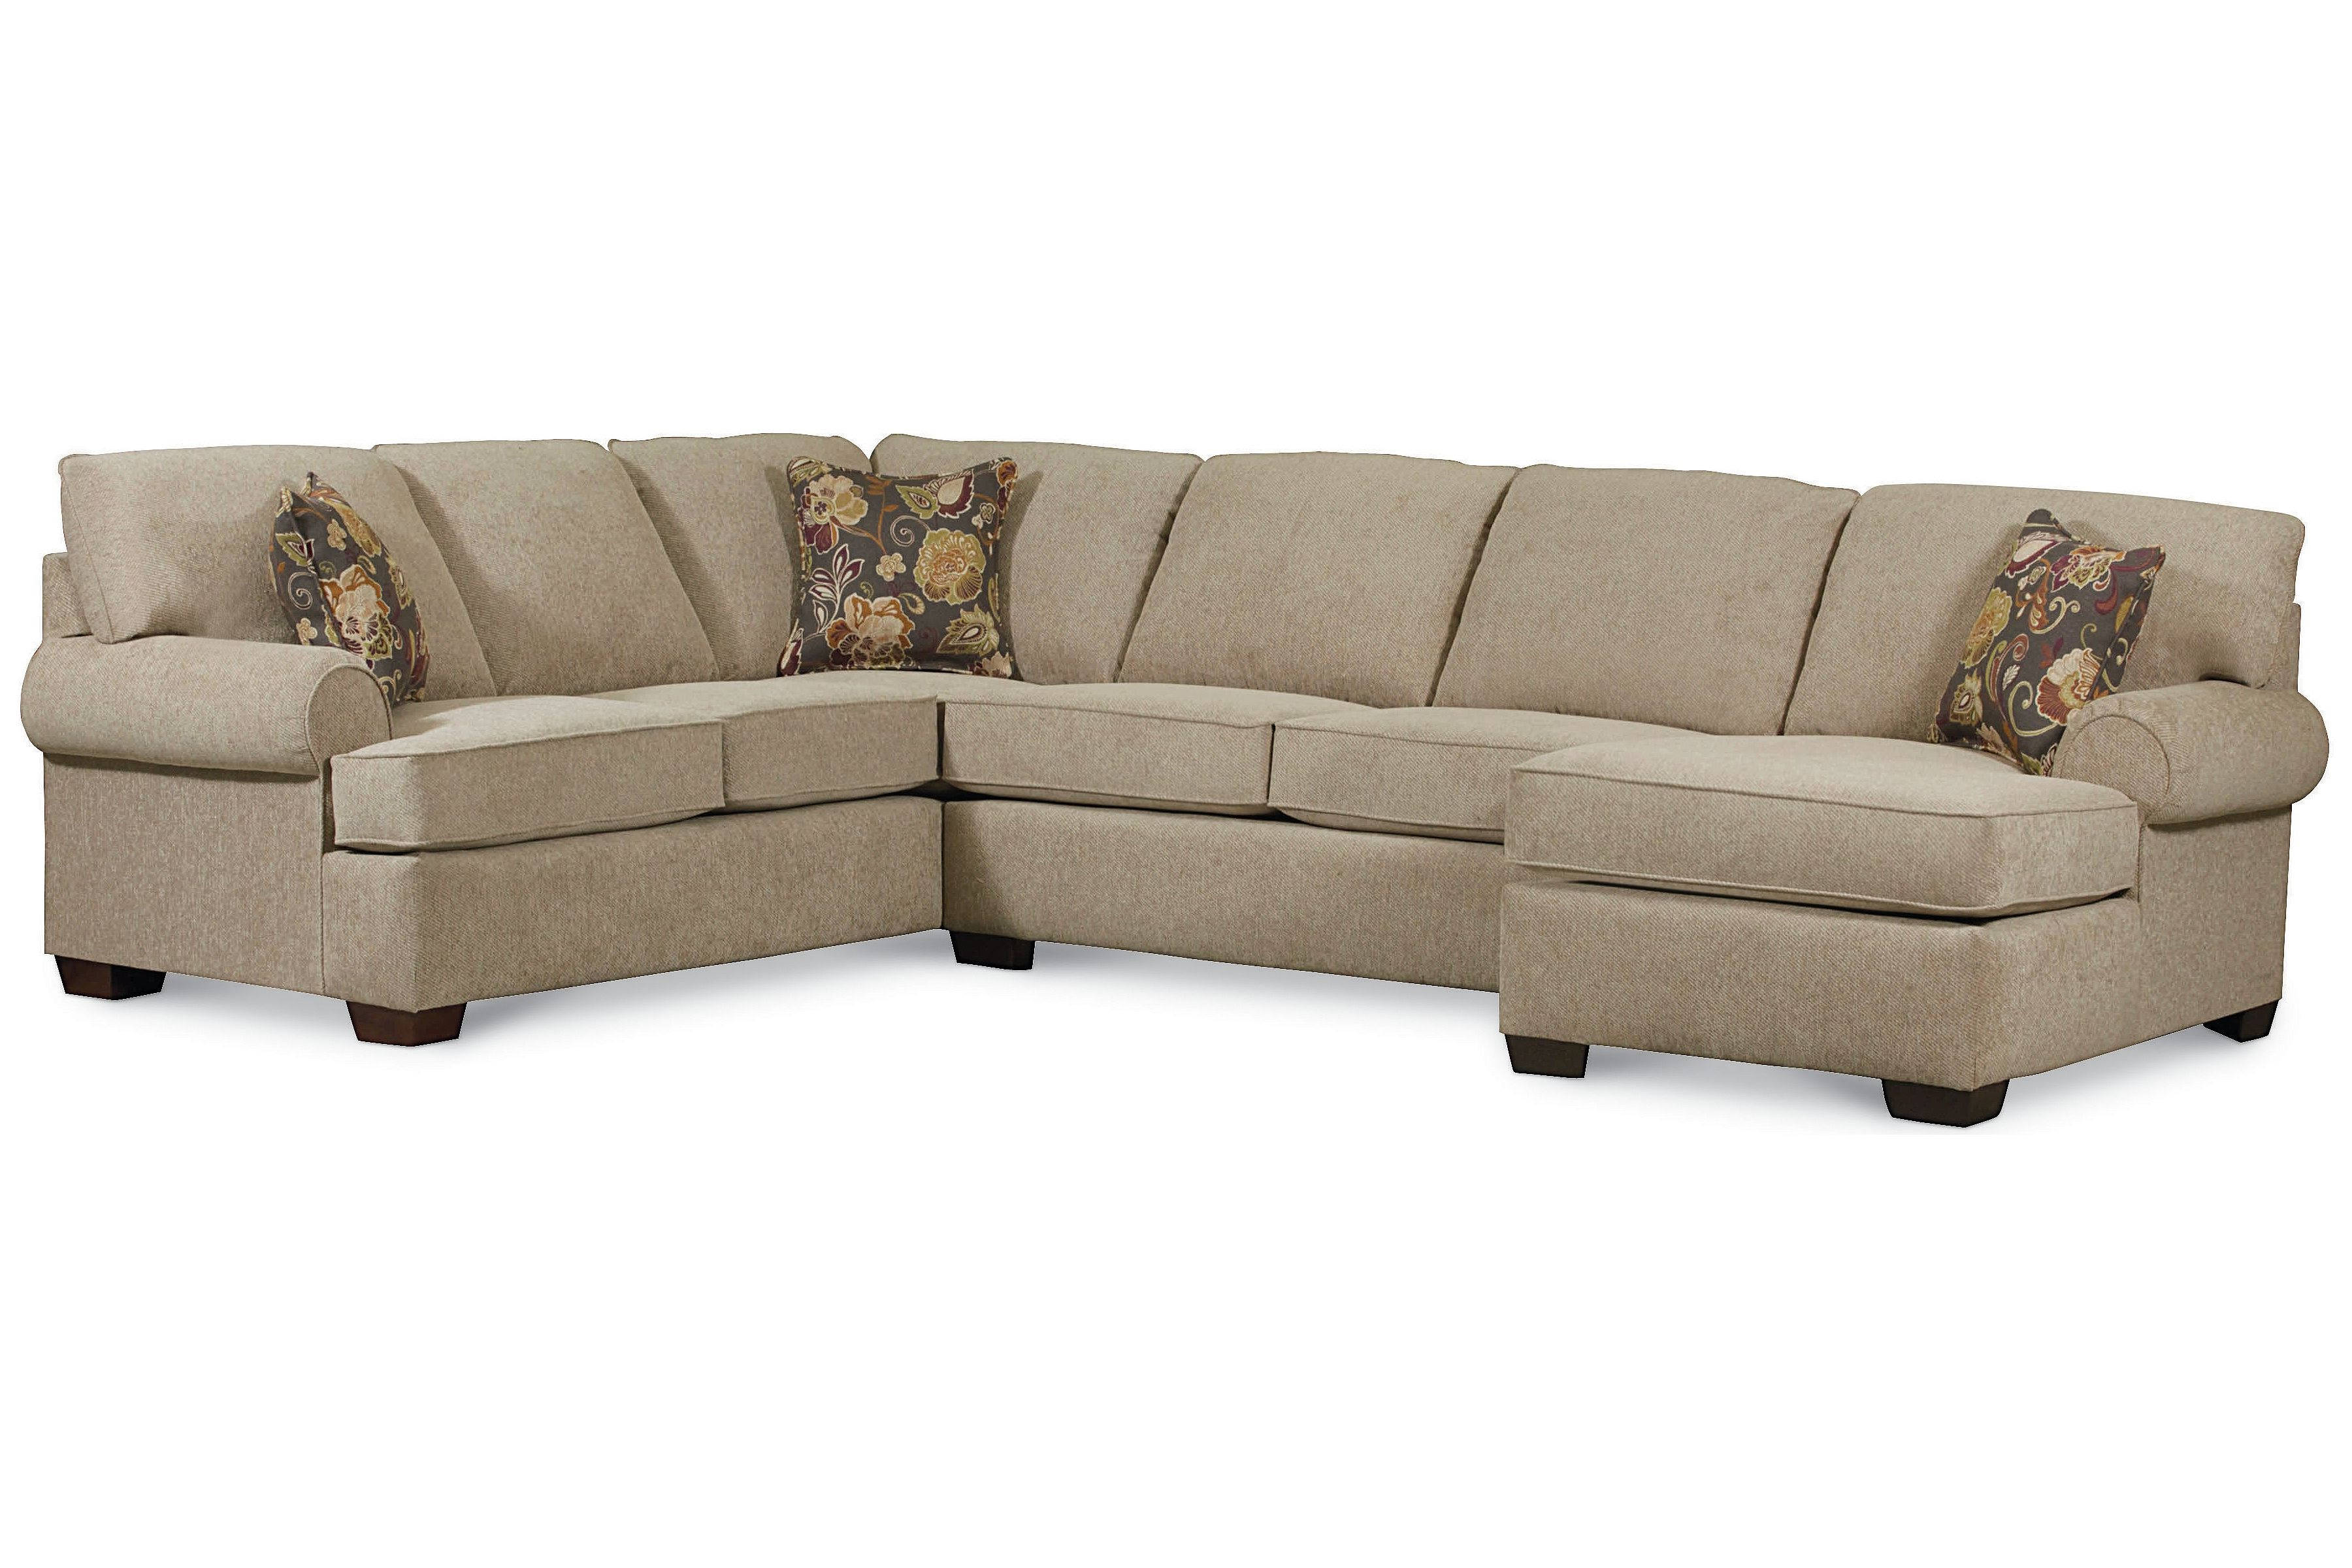 Vivian Tan Sectional With Raf Chaise